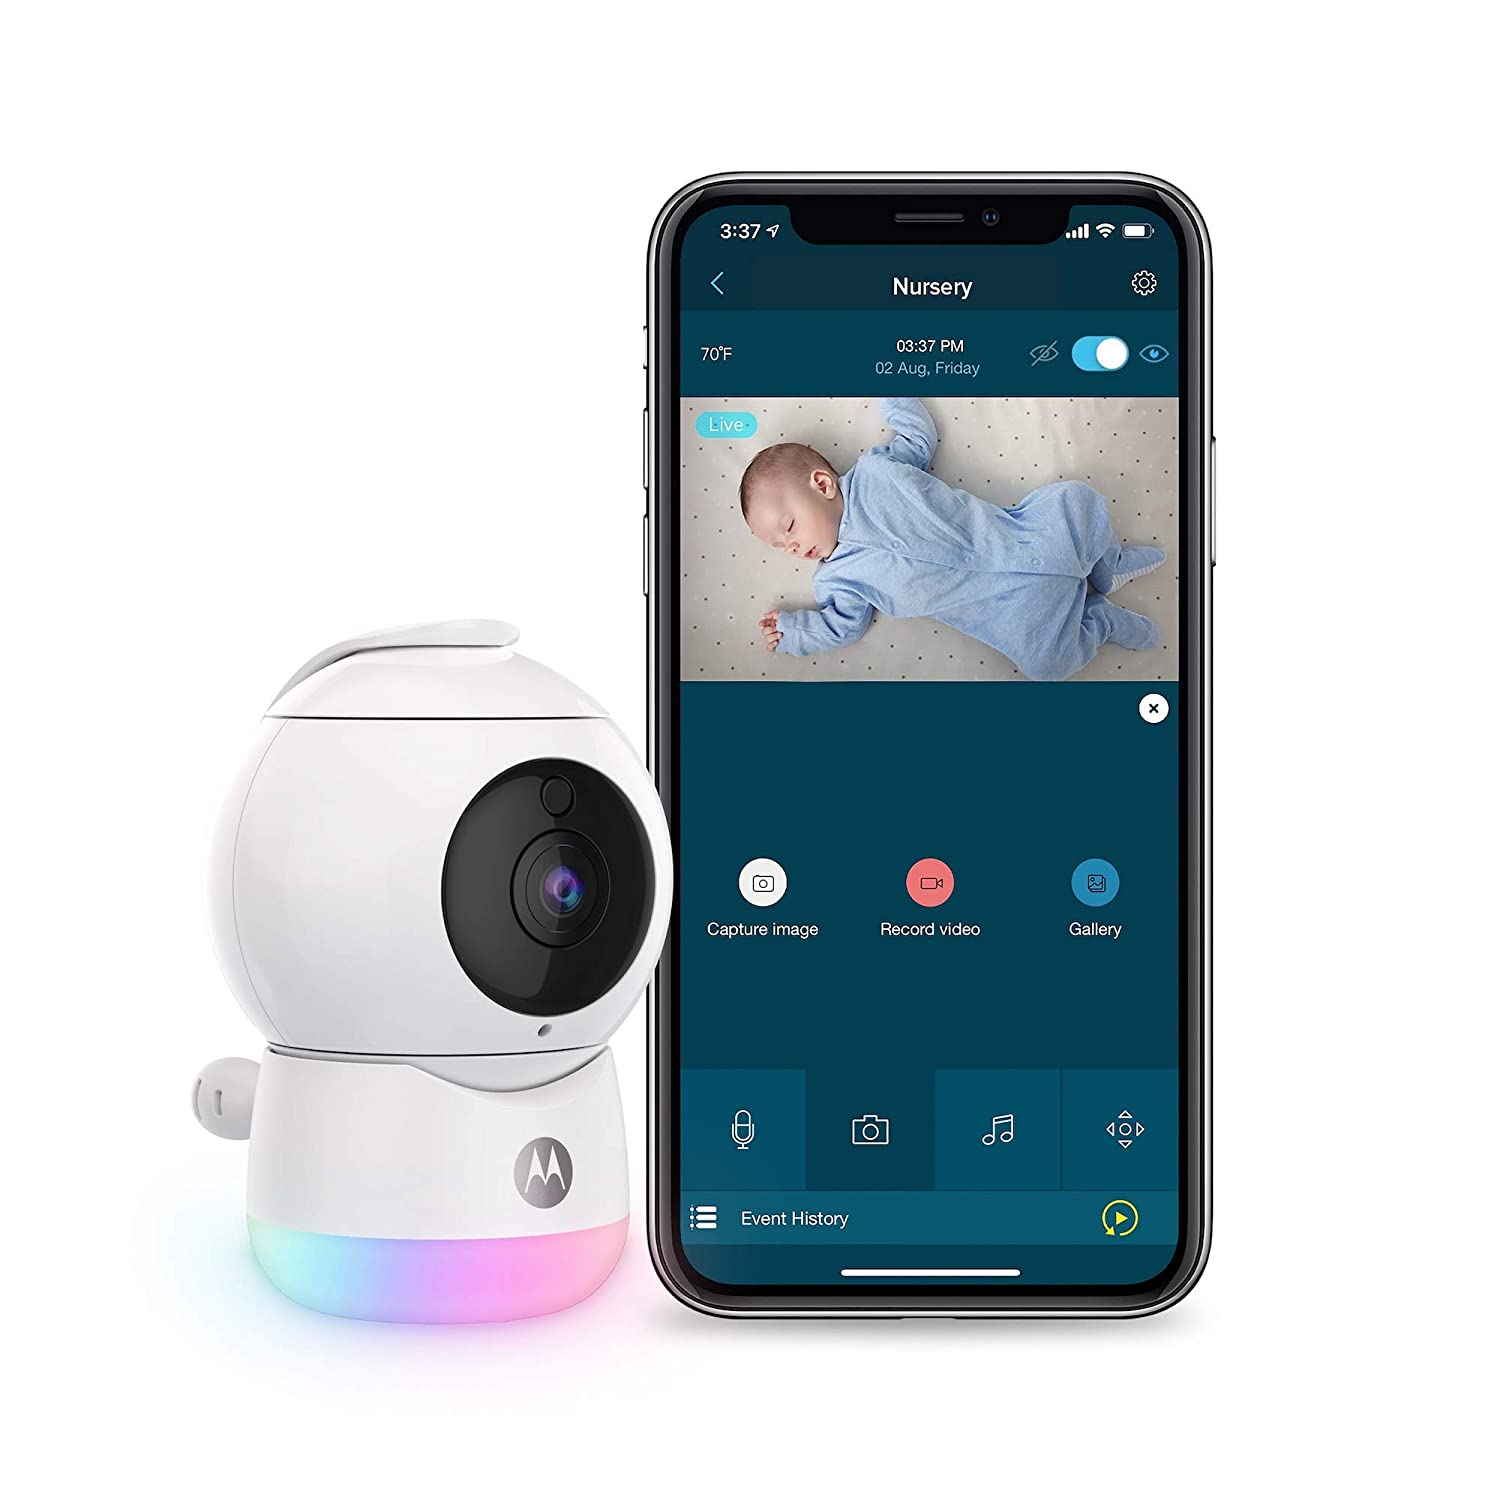 Motorola Peekaboo Video Baby, Elderly, Pet Monitor with Night Light - Portable Camera with Two-Way Audio - 1080p, Wide Angle View, Night Vision - Remote Pan Scan, Digital Zoom, Tilt